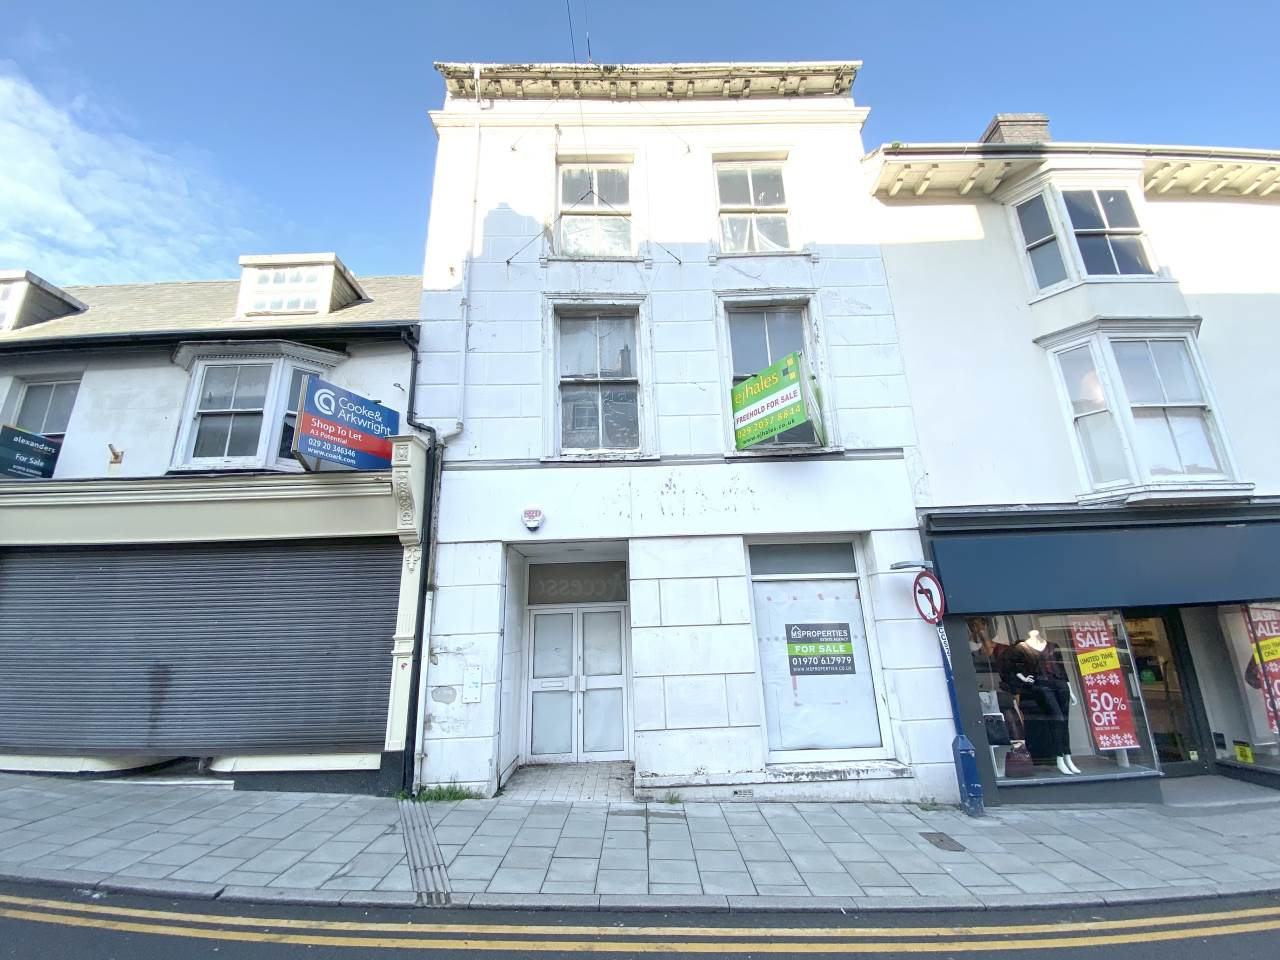 Commercial property for sale in Great Darkgate Street, Aberystwyth - Property Image 1